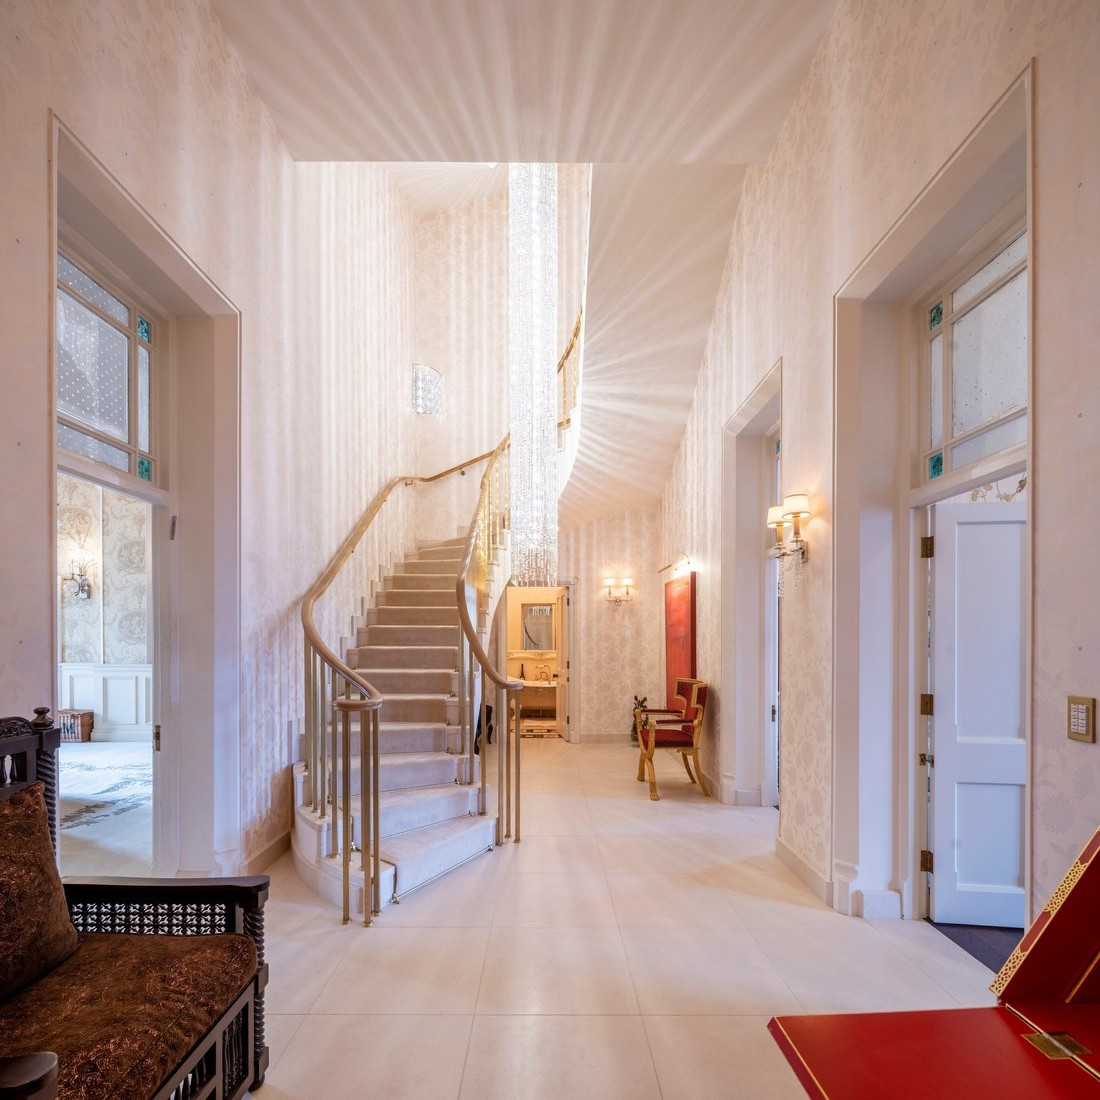 The best hotel penthouses in London for sale